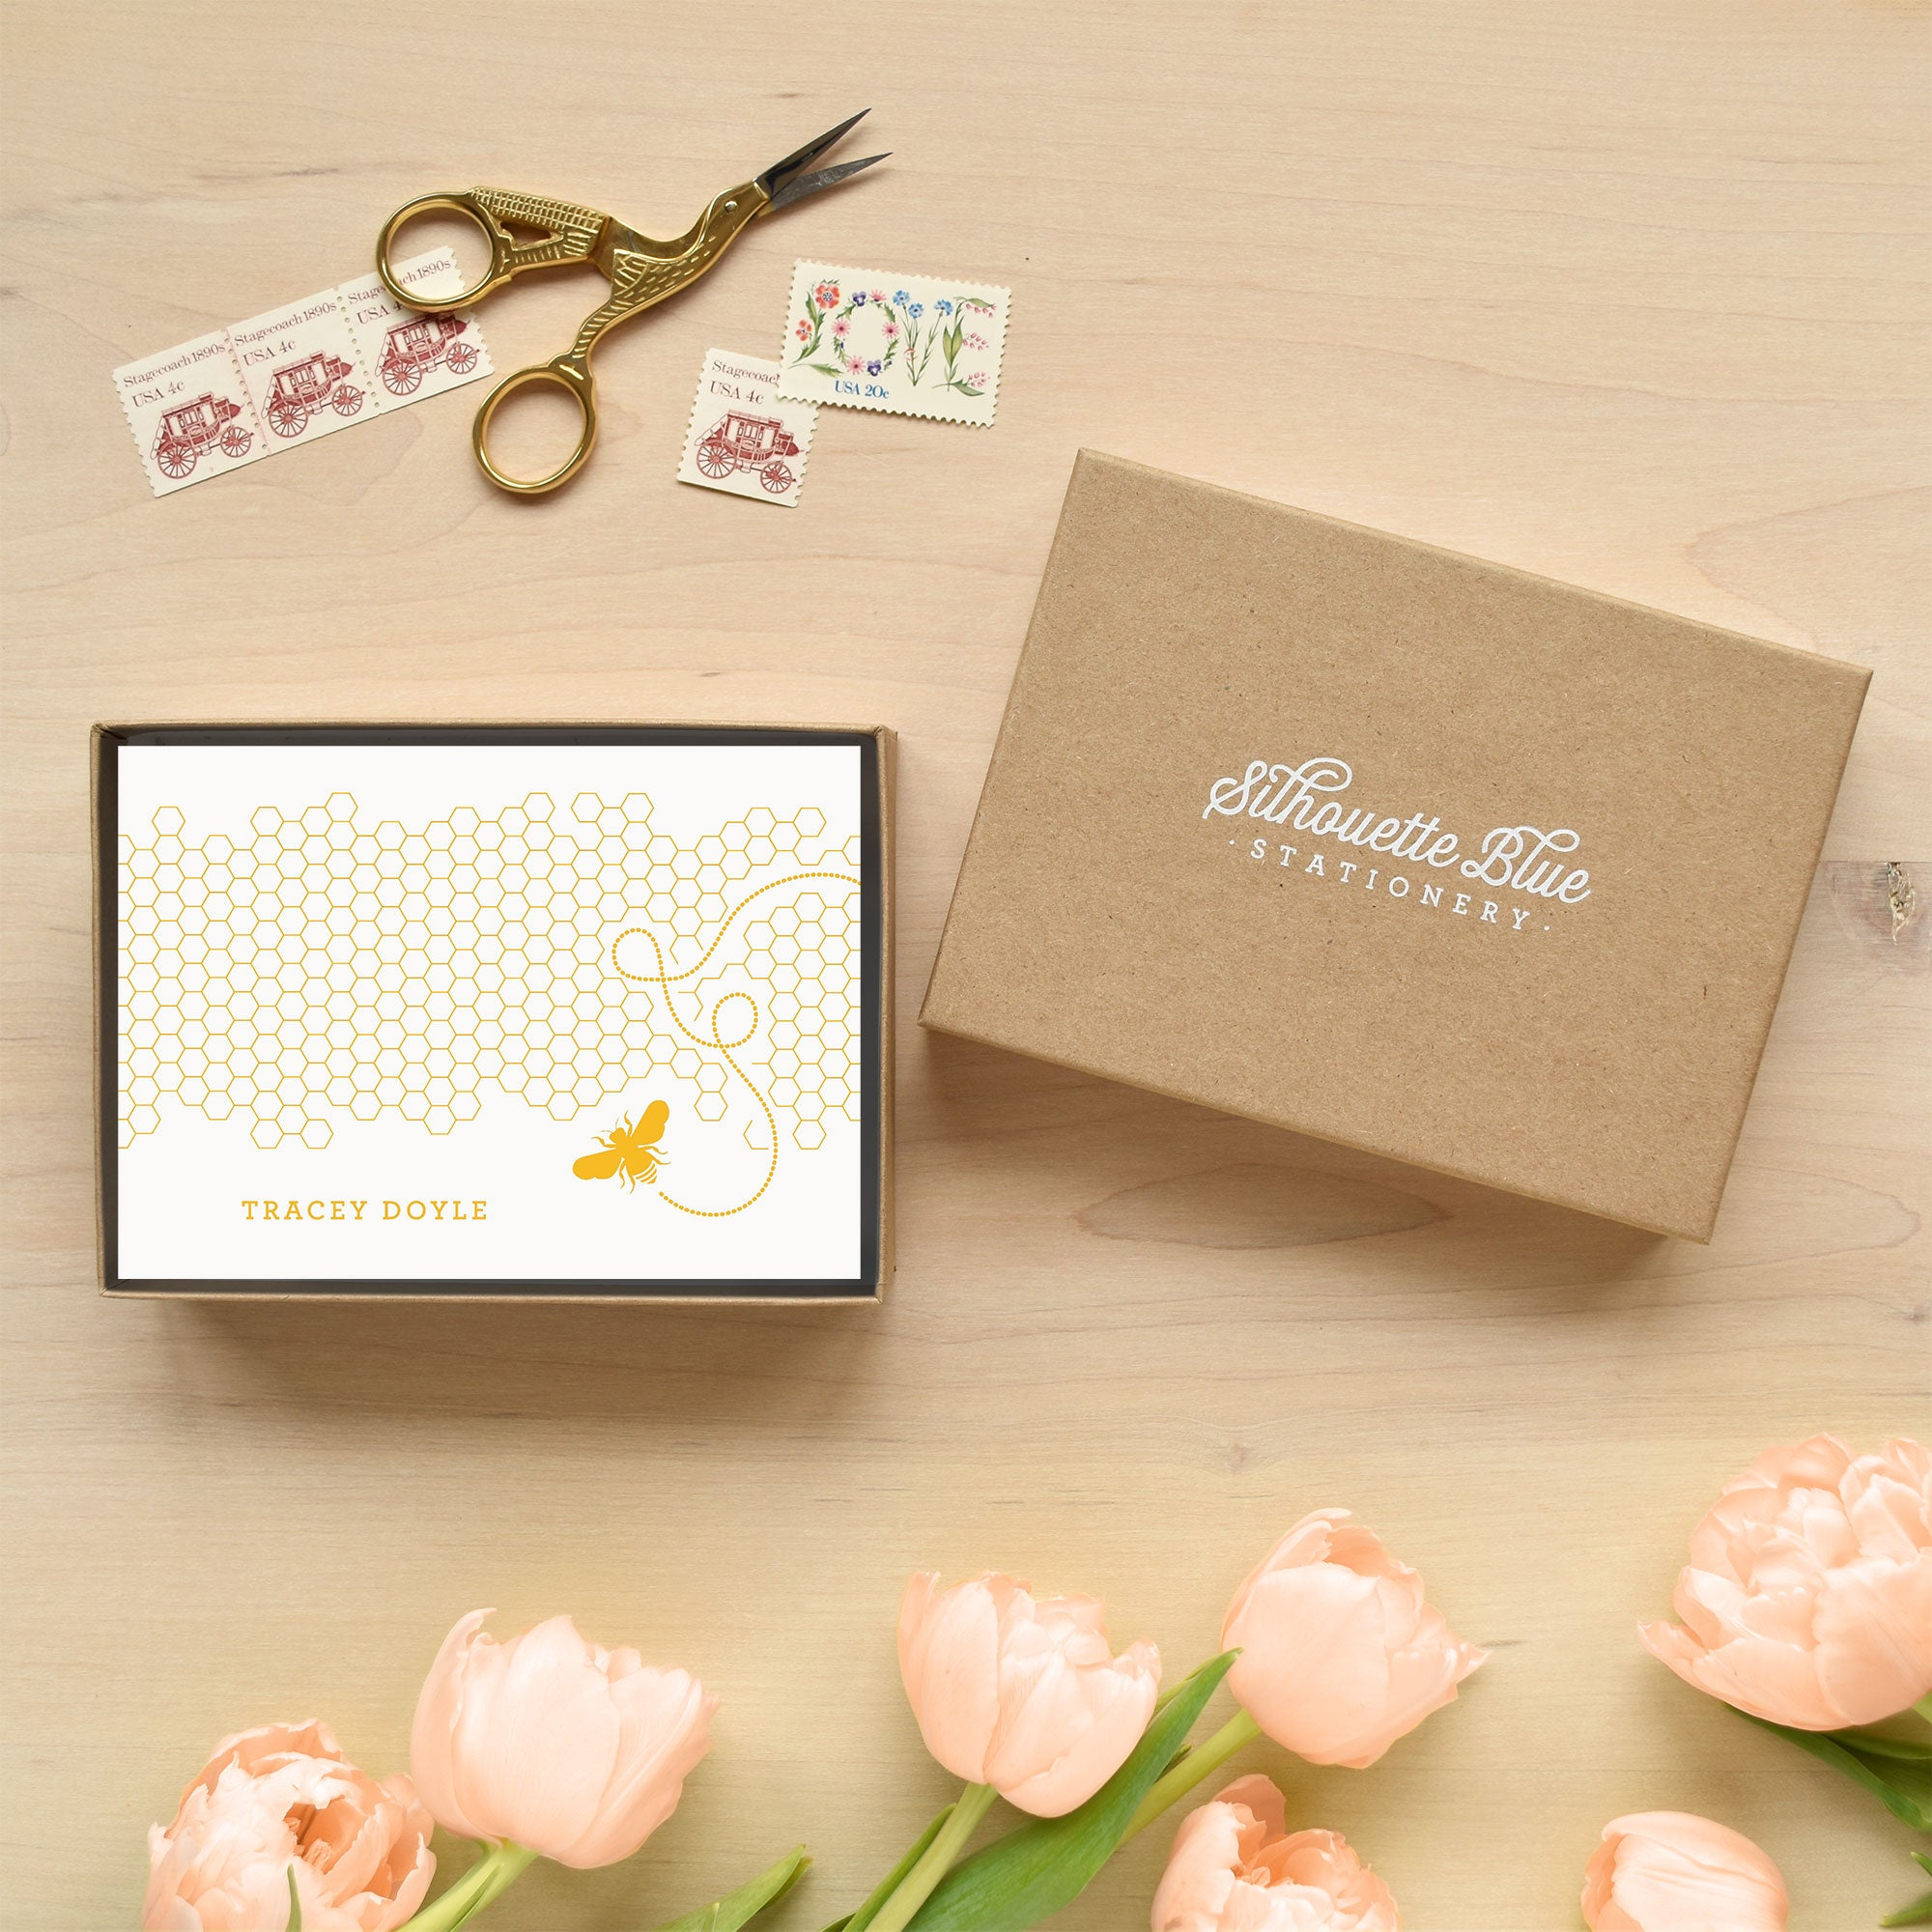 Honey Personalized Stationery